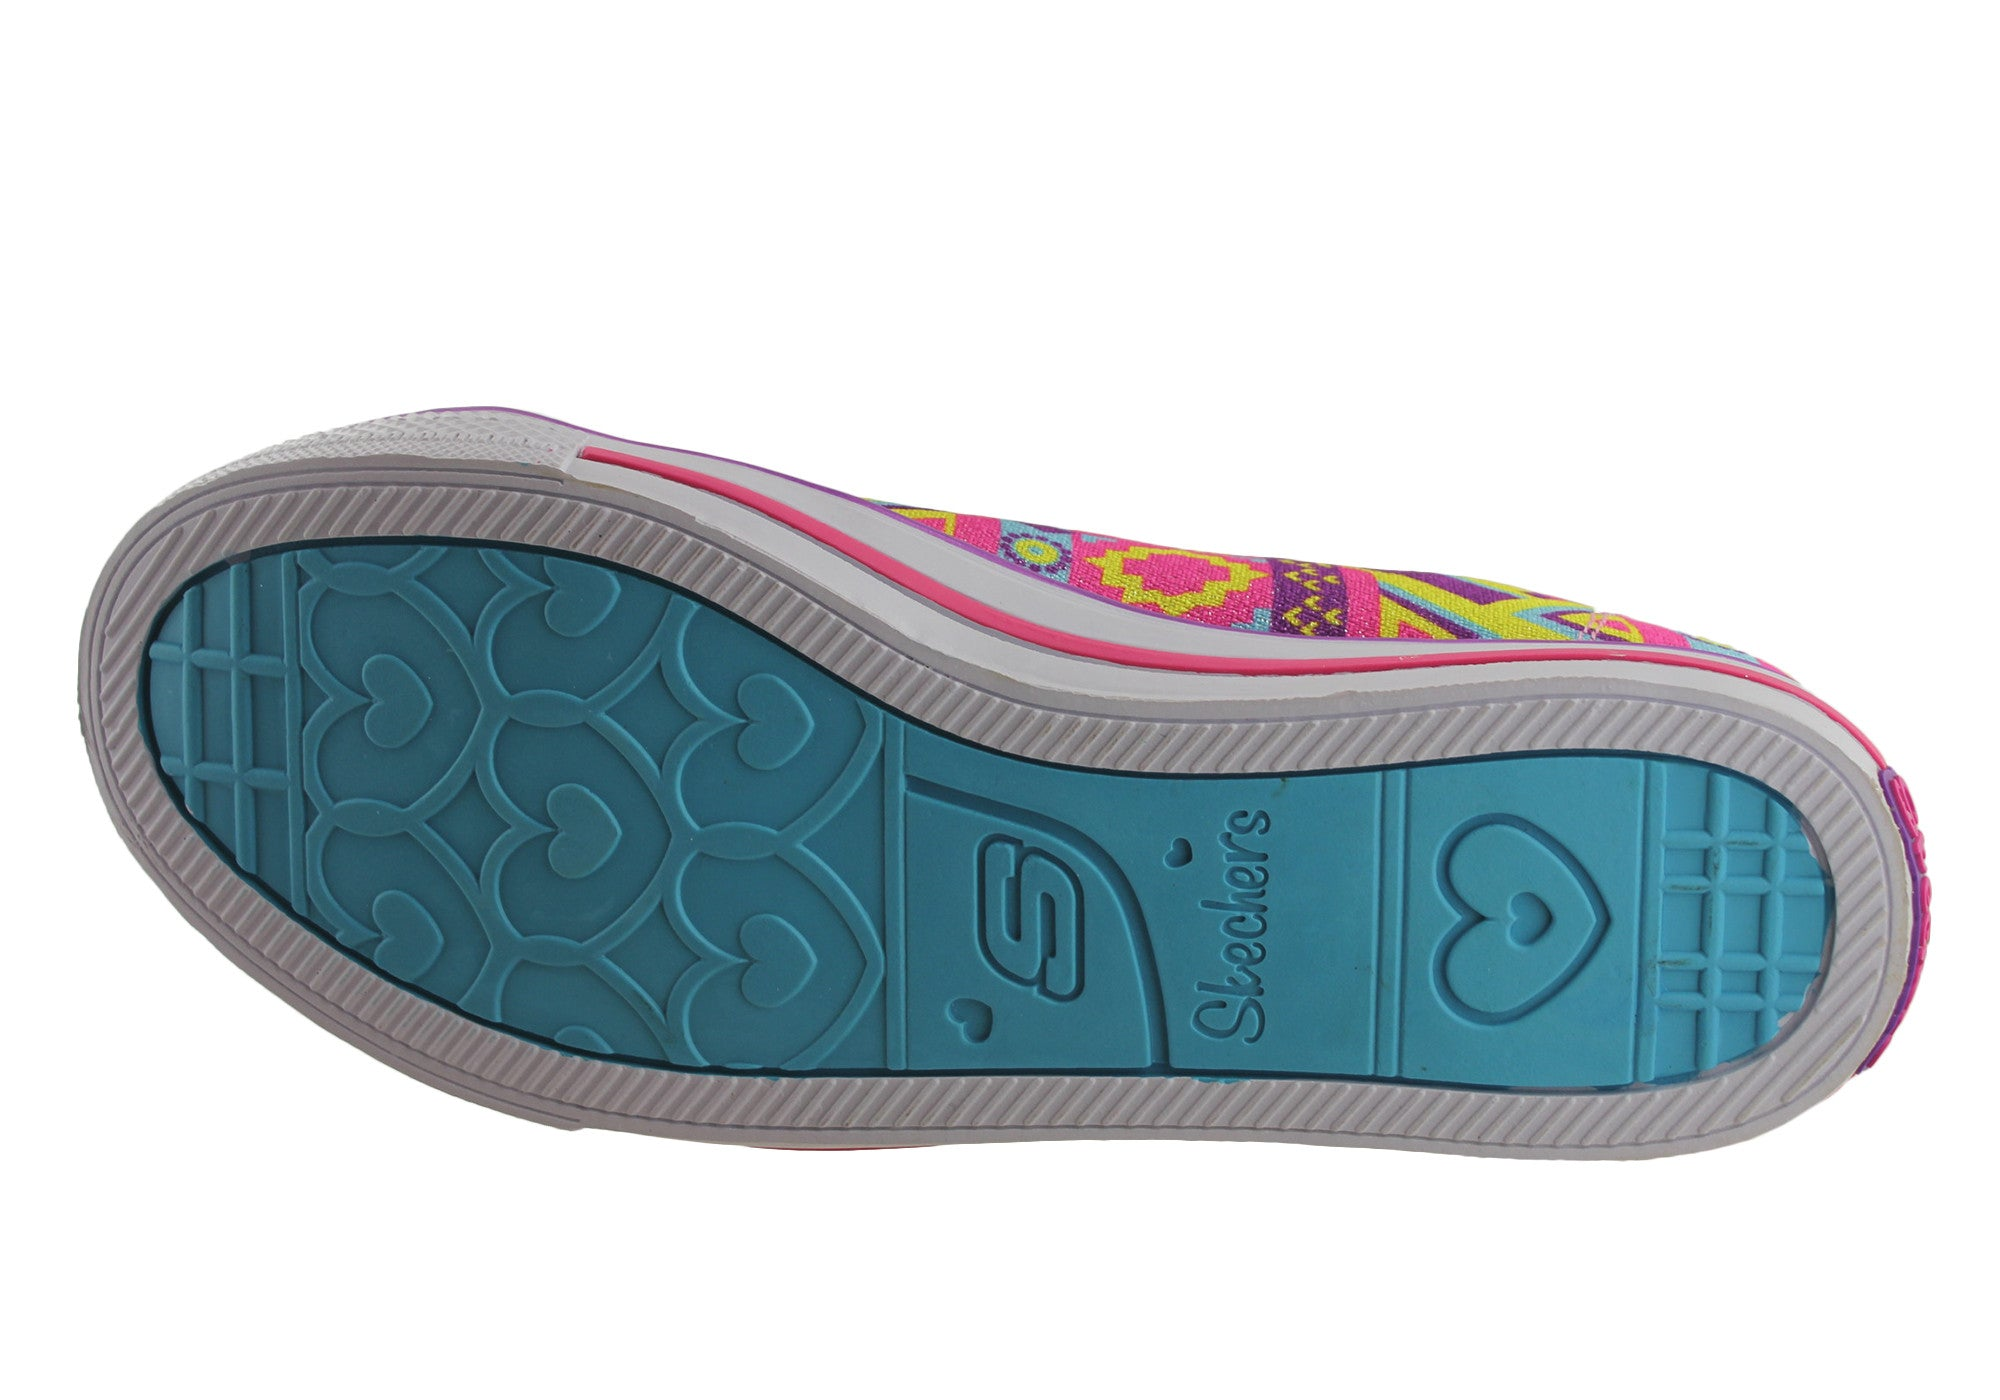 Skechers S Lights Chit Chat Slipon light Up Kids Shoes